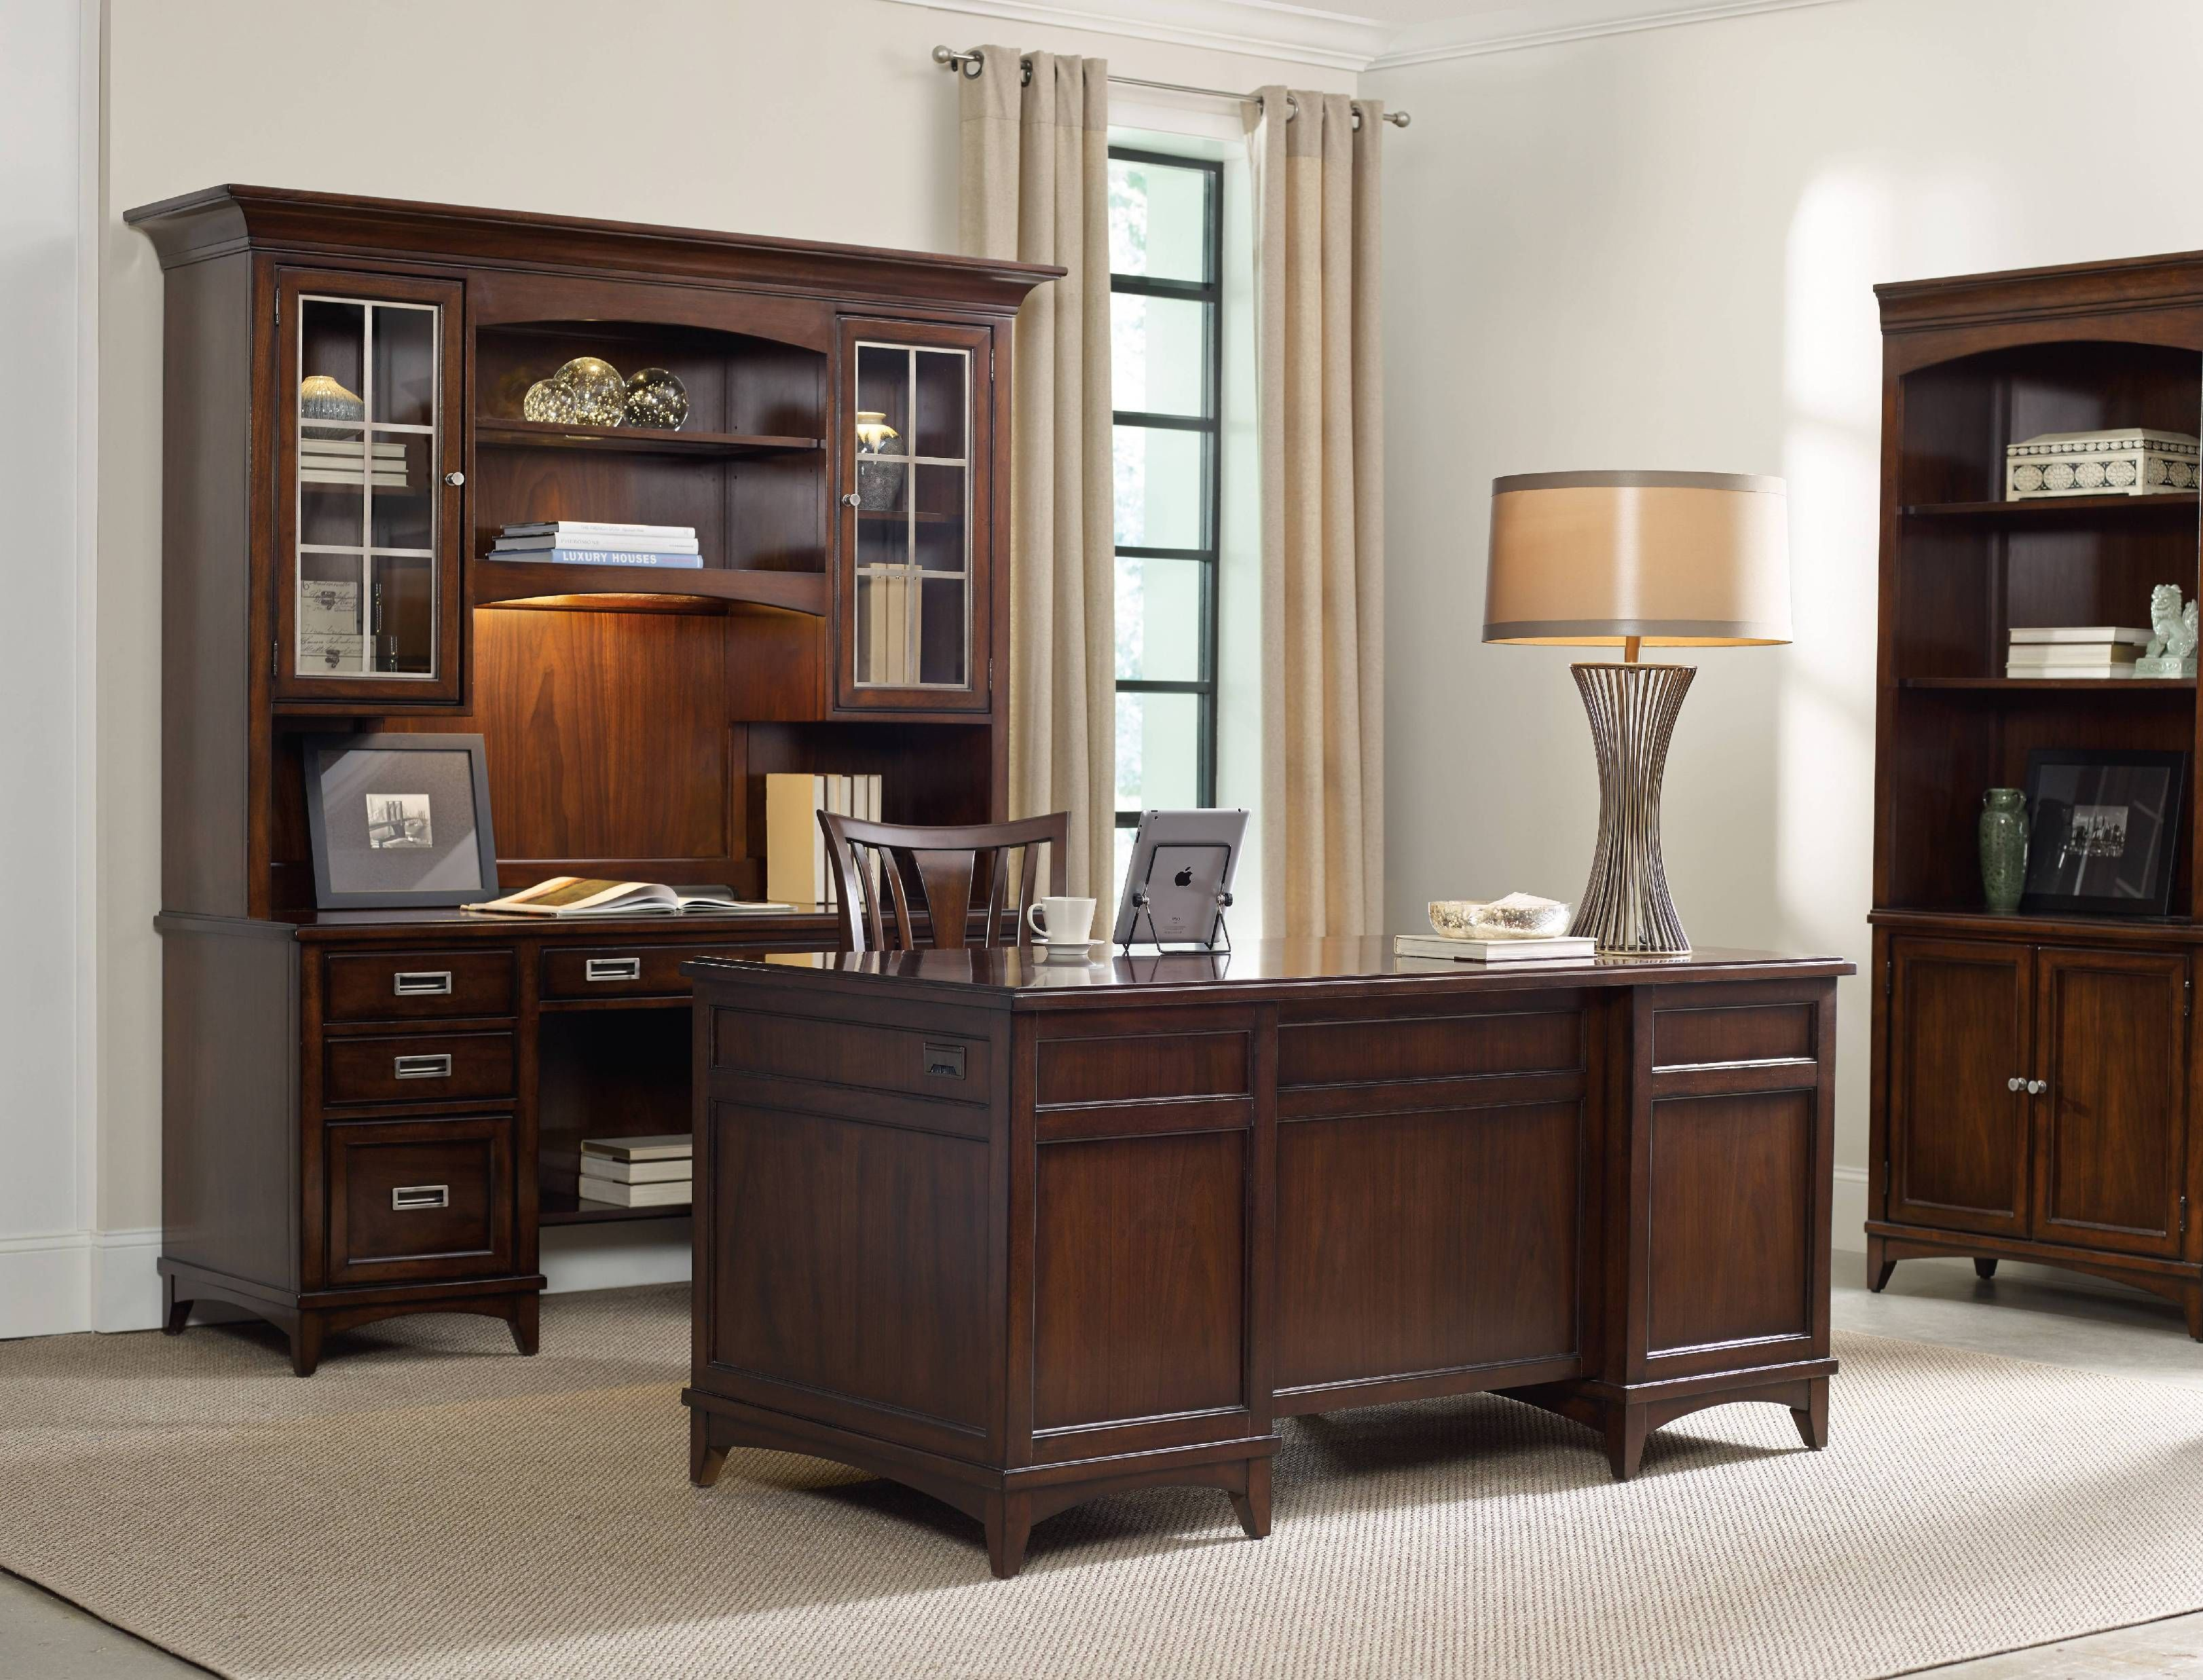 Hooker Furniture Home Office Impressive Hooker Furniture Home Office Latitude Executive Desk 516710562 . Inspiration Design